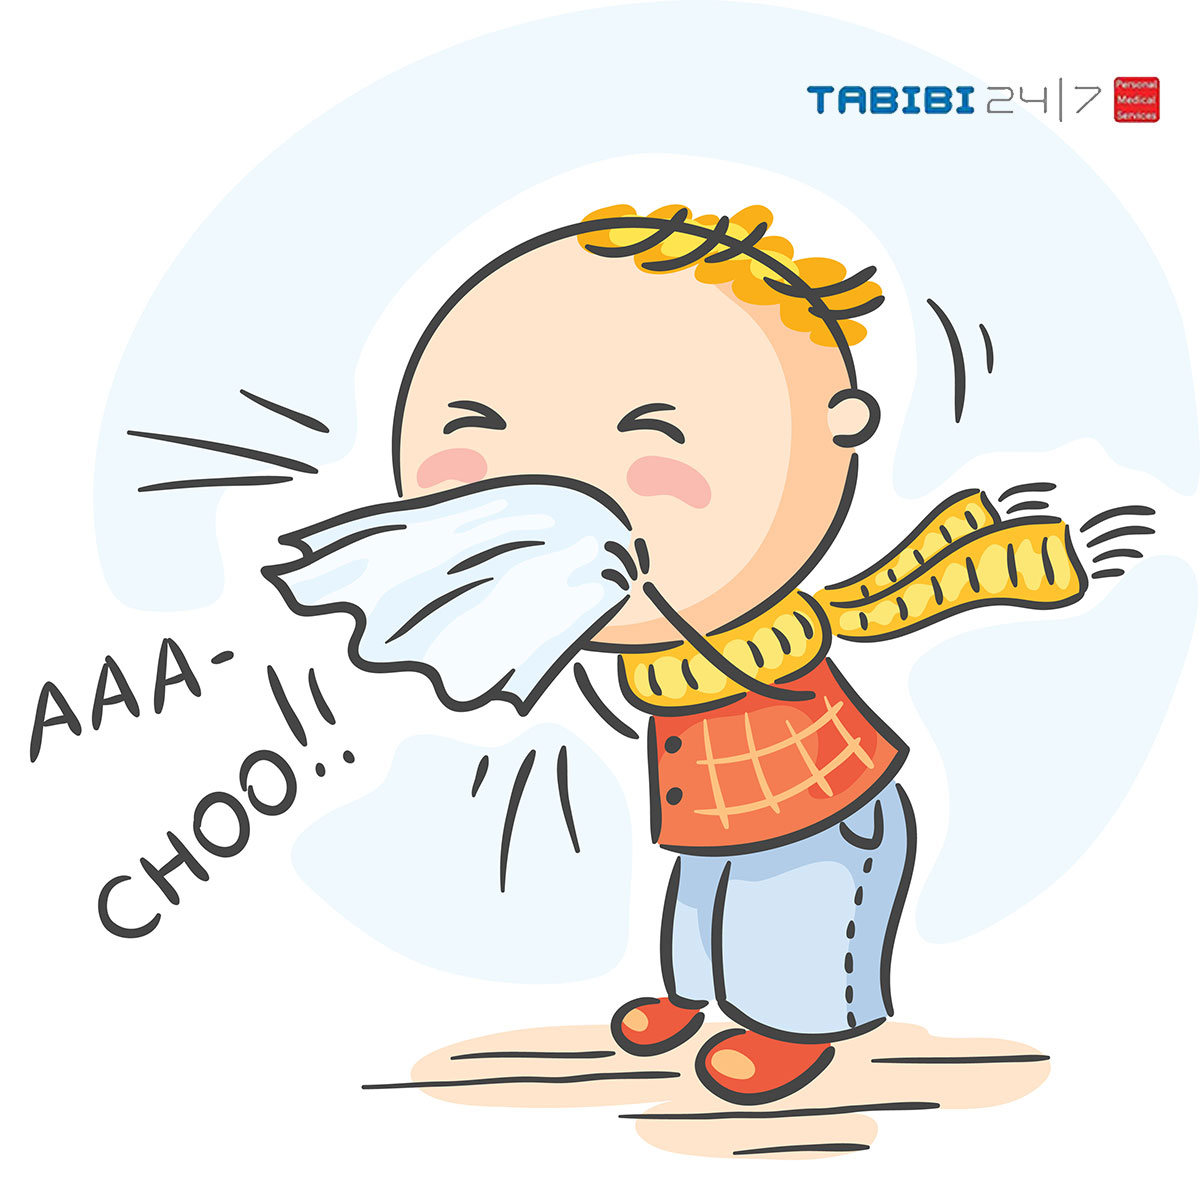 Flu clipart cold cough. Tackling the season